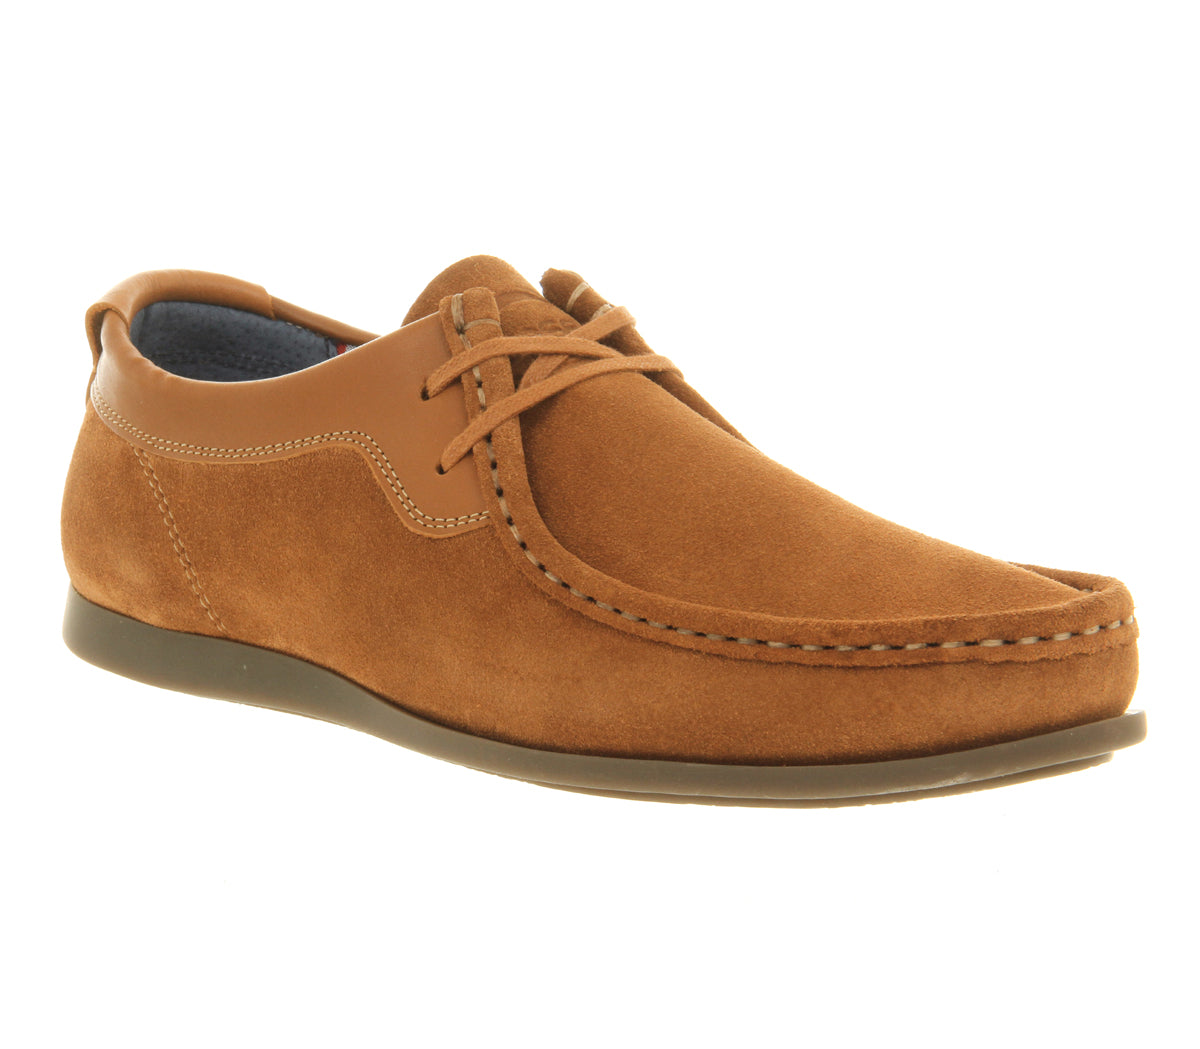 9d3ed3d5ab9 Mens Base Catch Wallabee Tobacco Suede Uk Size 9